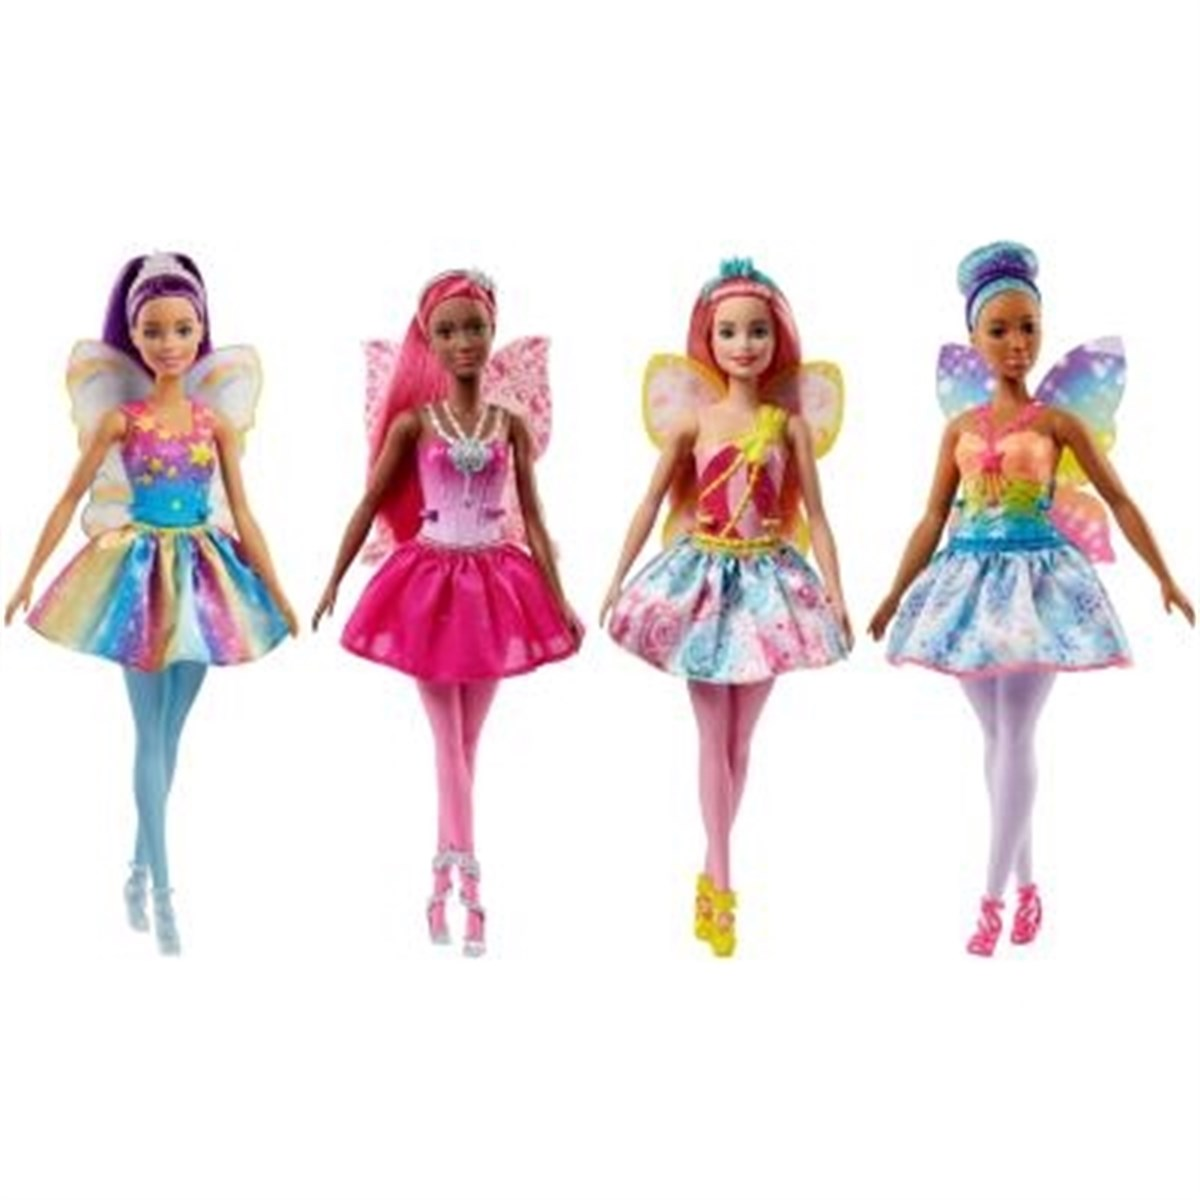 Barbie Dreamtopia Peri Barbie Bebekler FJC84